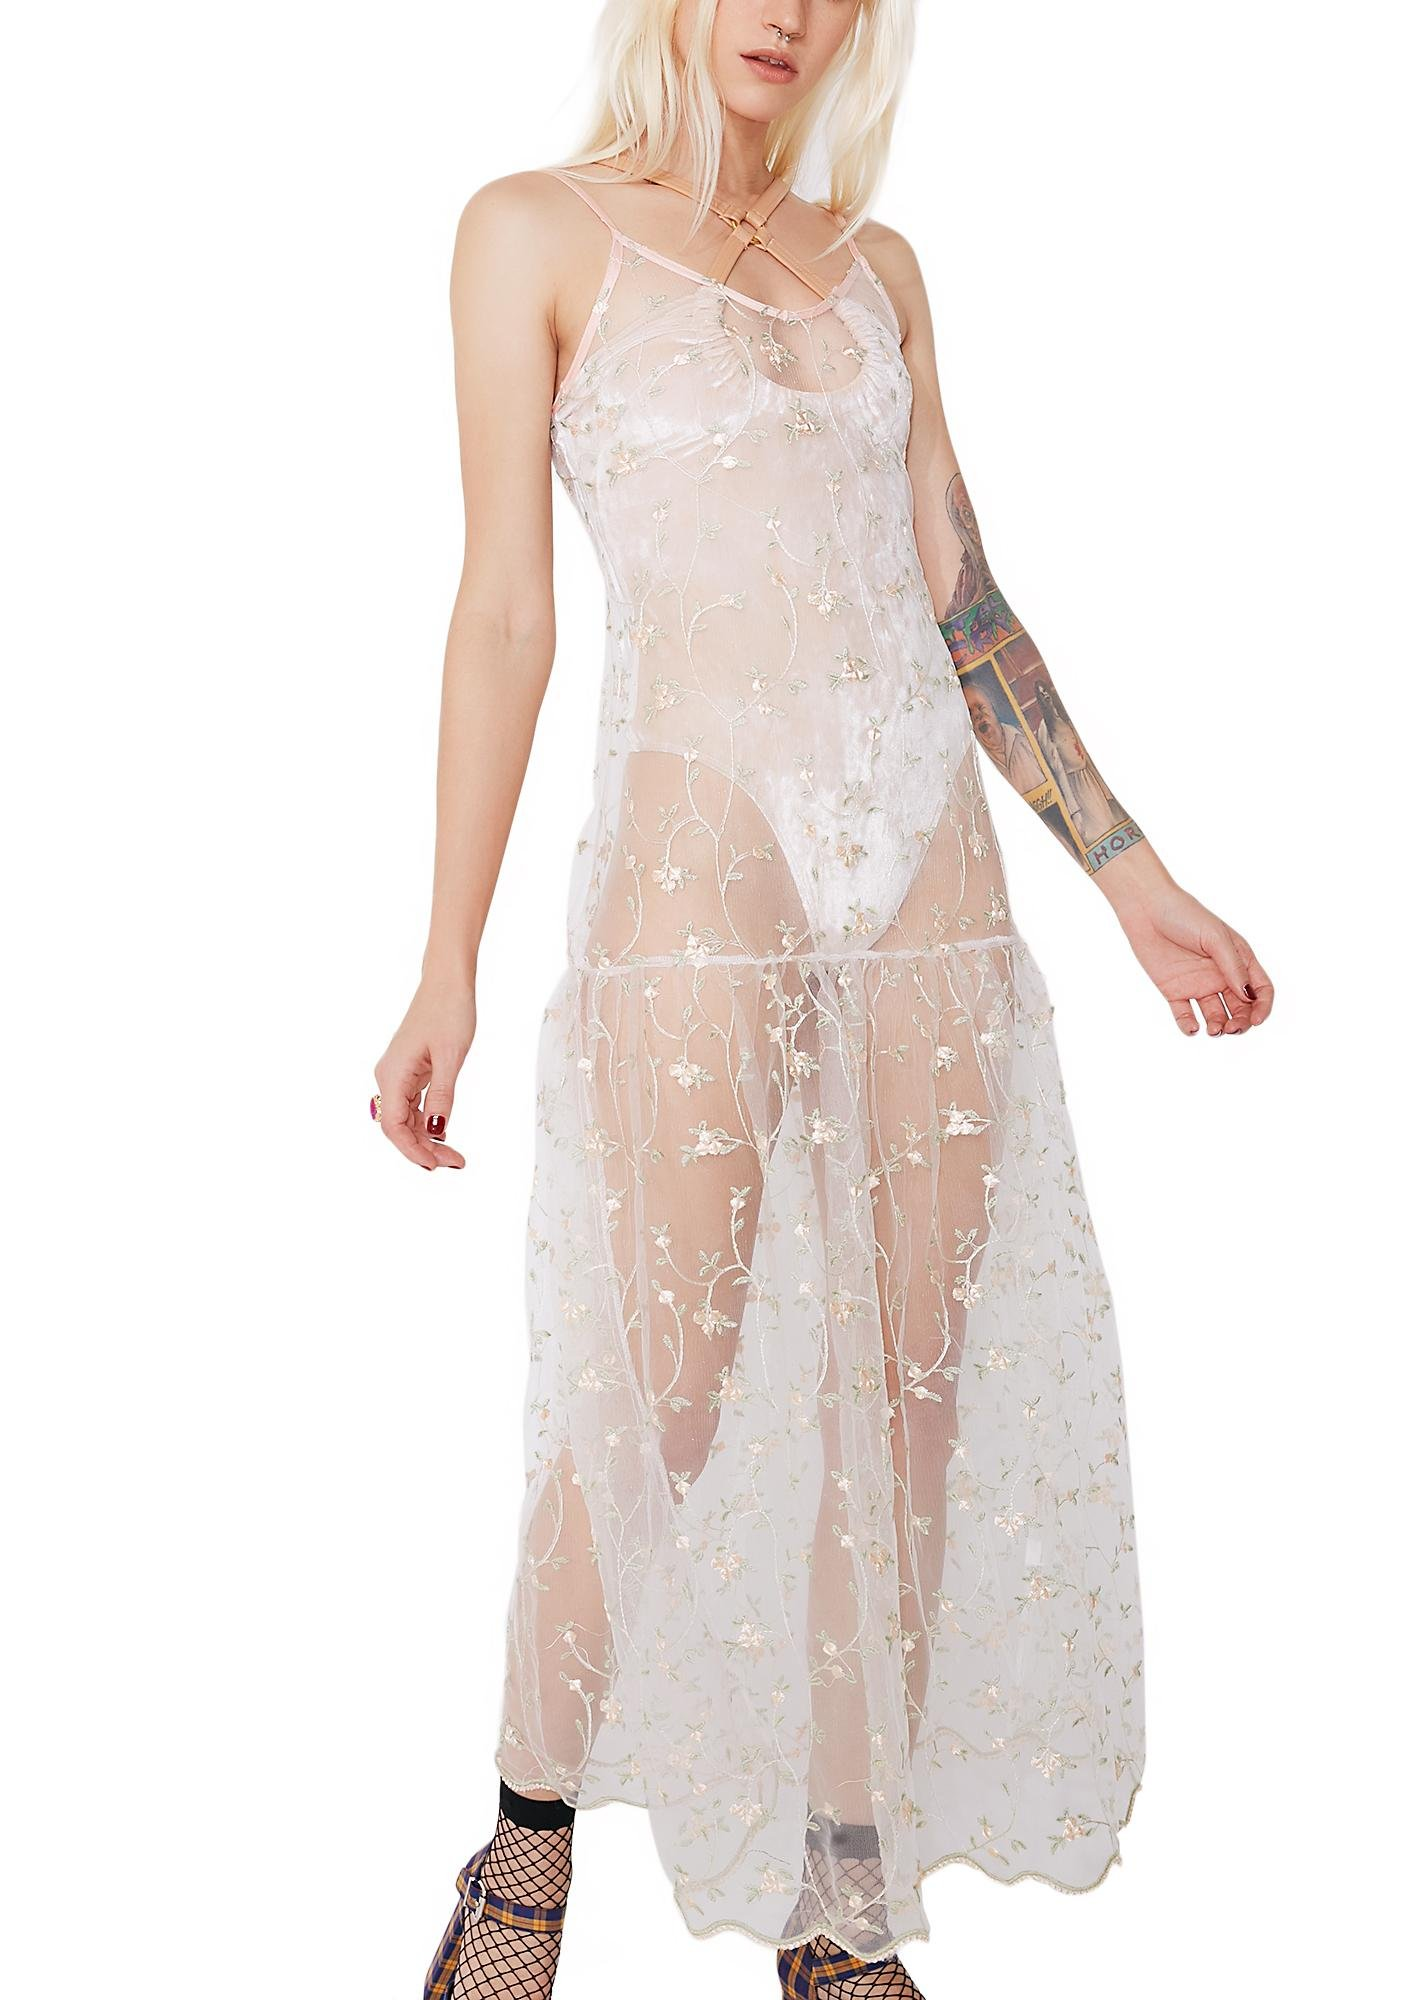 https://www.dollskill.com/as-i-am-forest-flower-maxi-dress.html